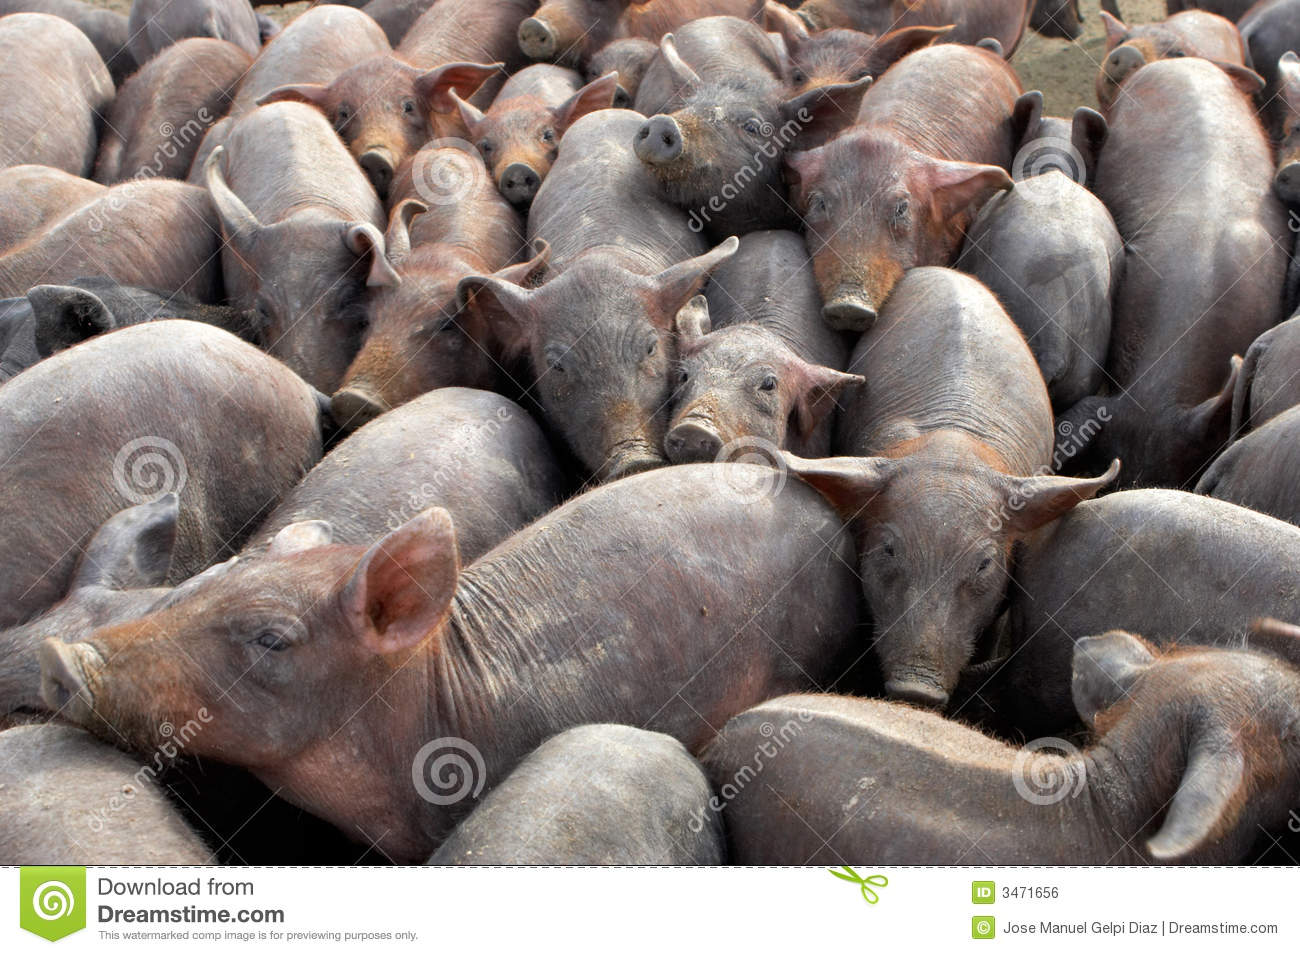 Group Of Pigs Royalty Free Stock Image - Image: 3471656